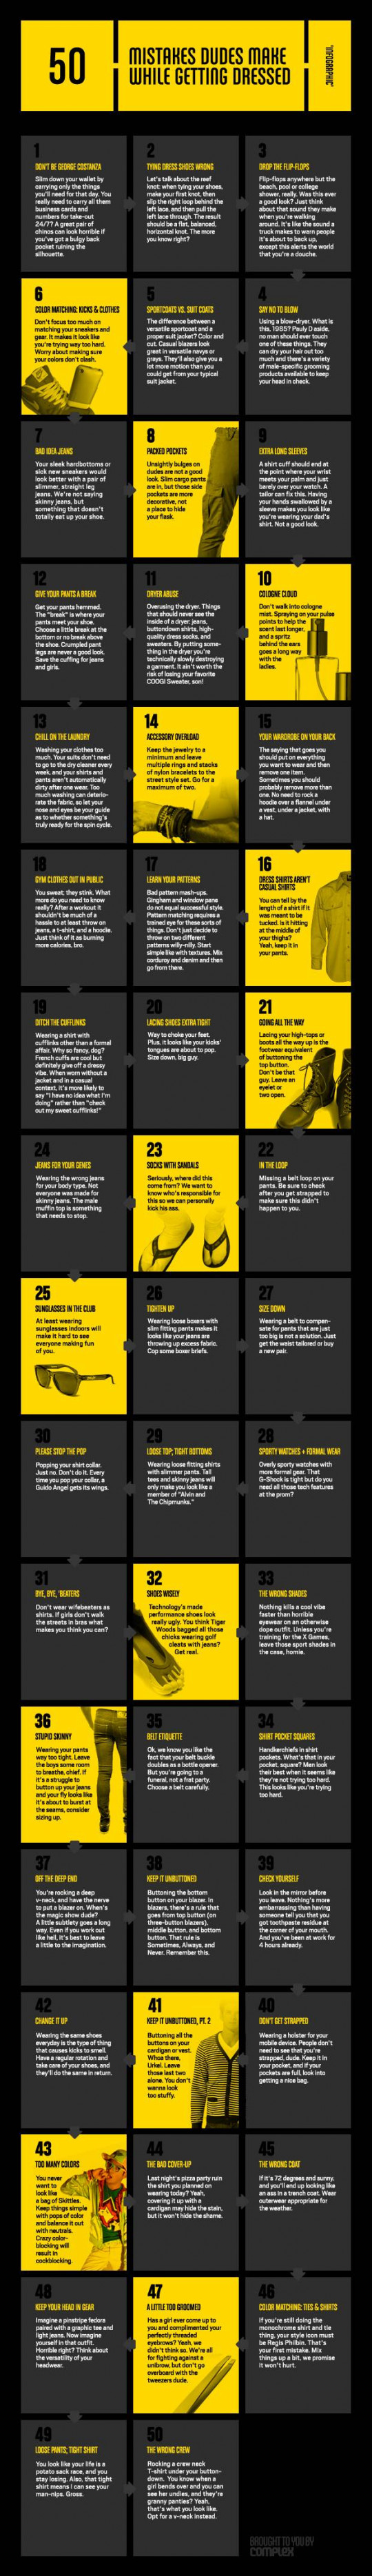 50 Mistakes Dudes Make While Getting Dressed Infographic